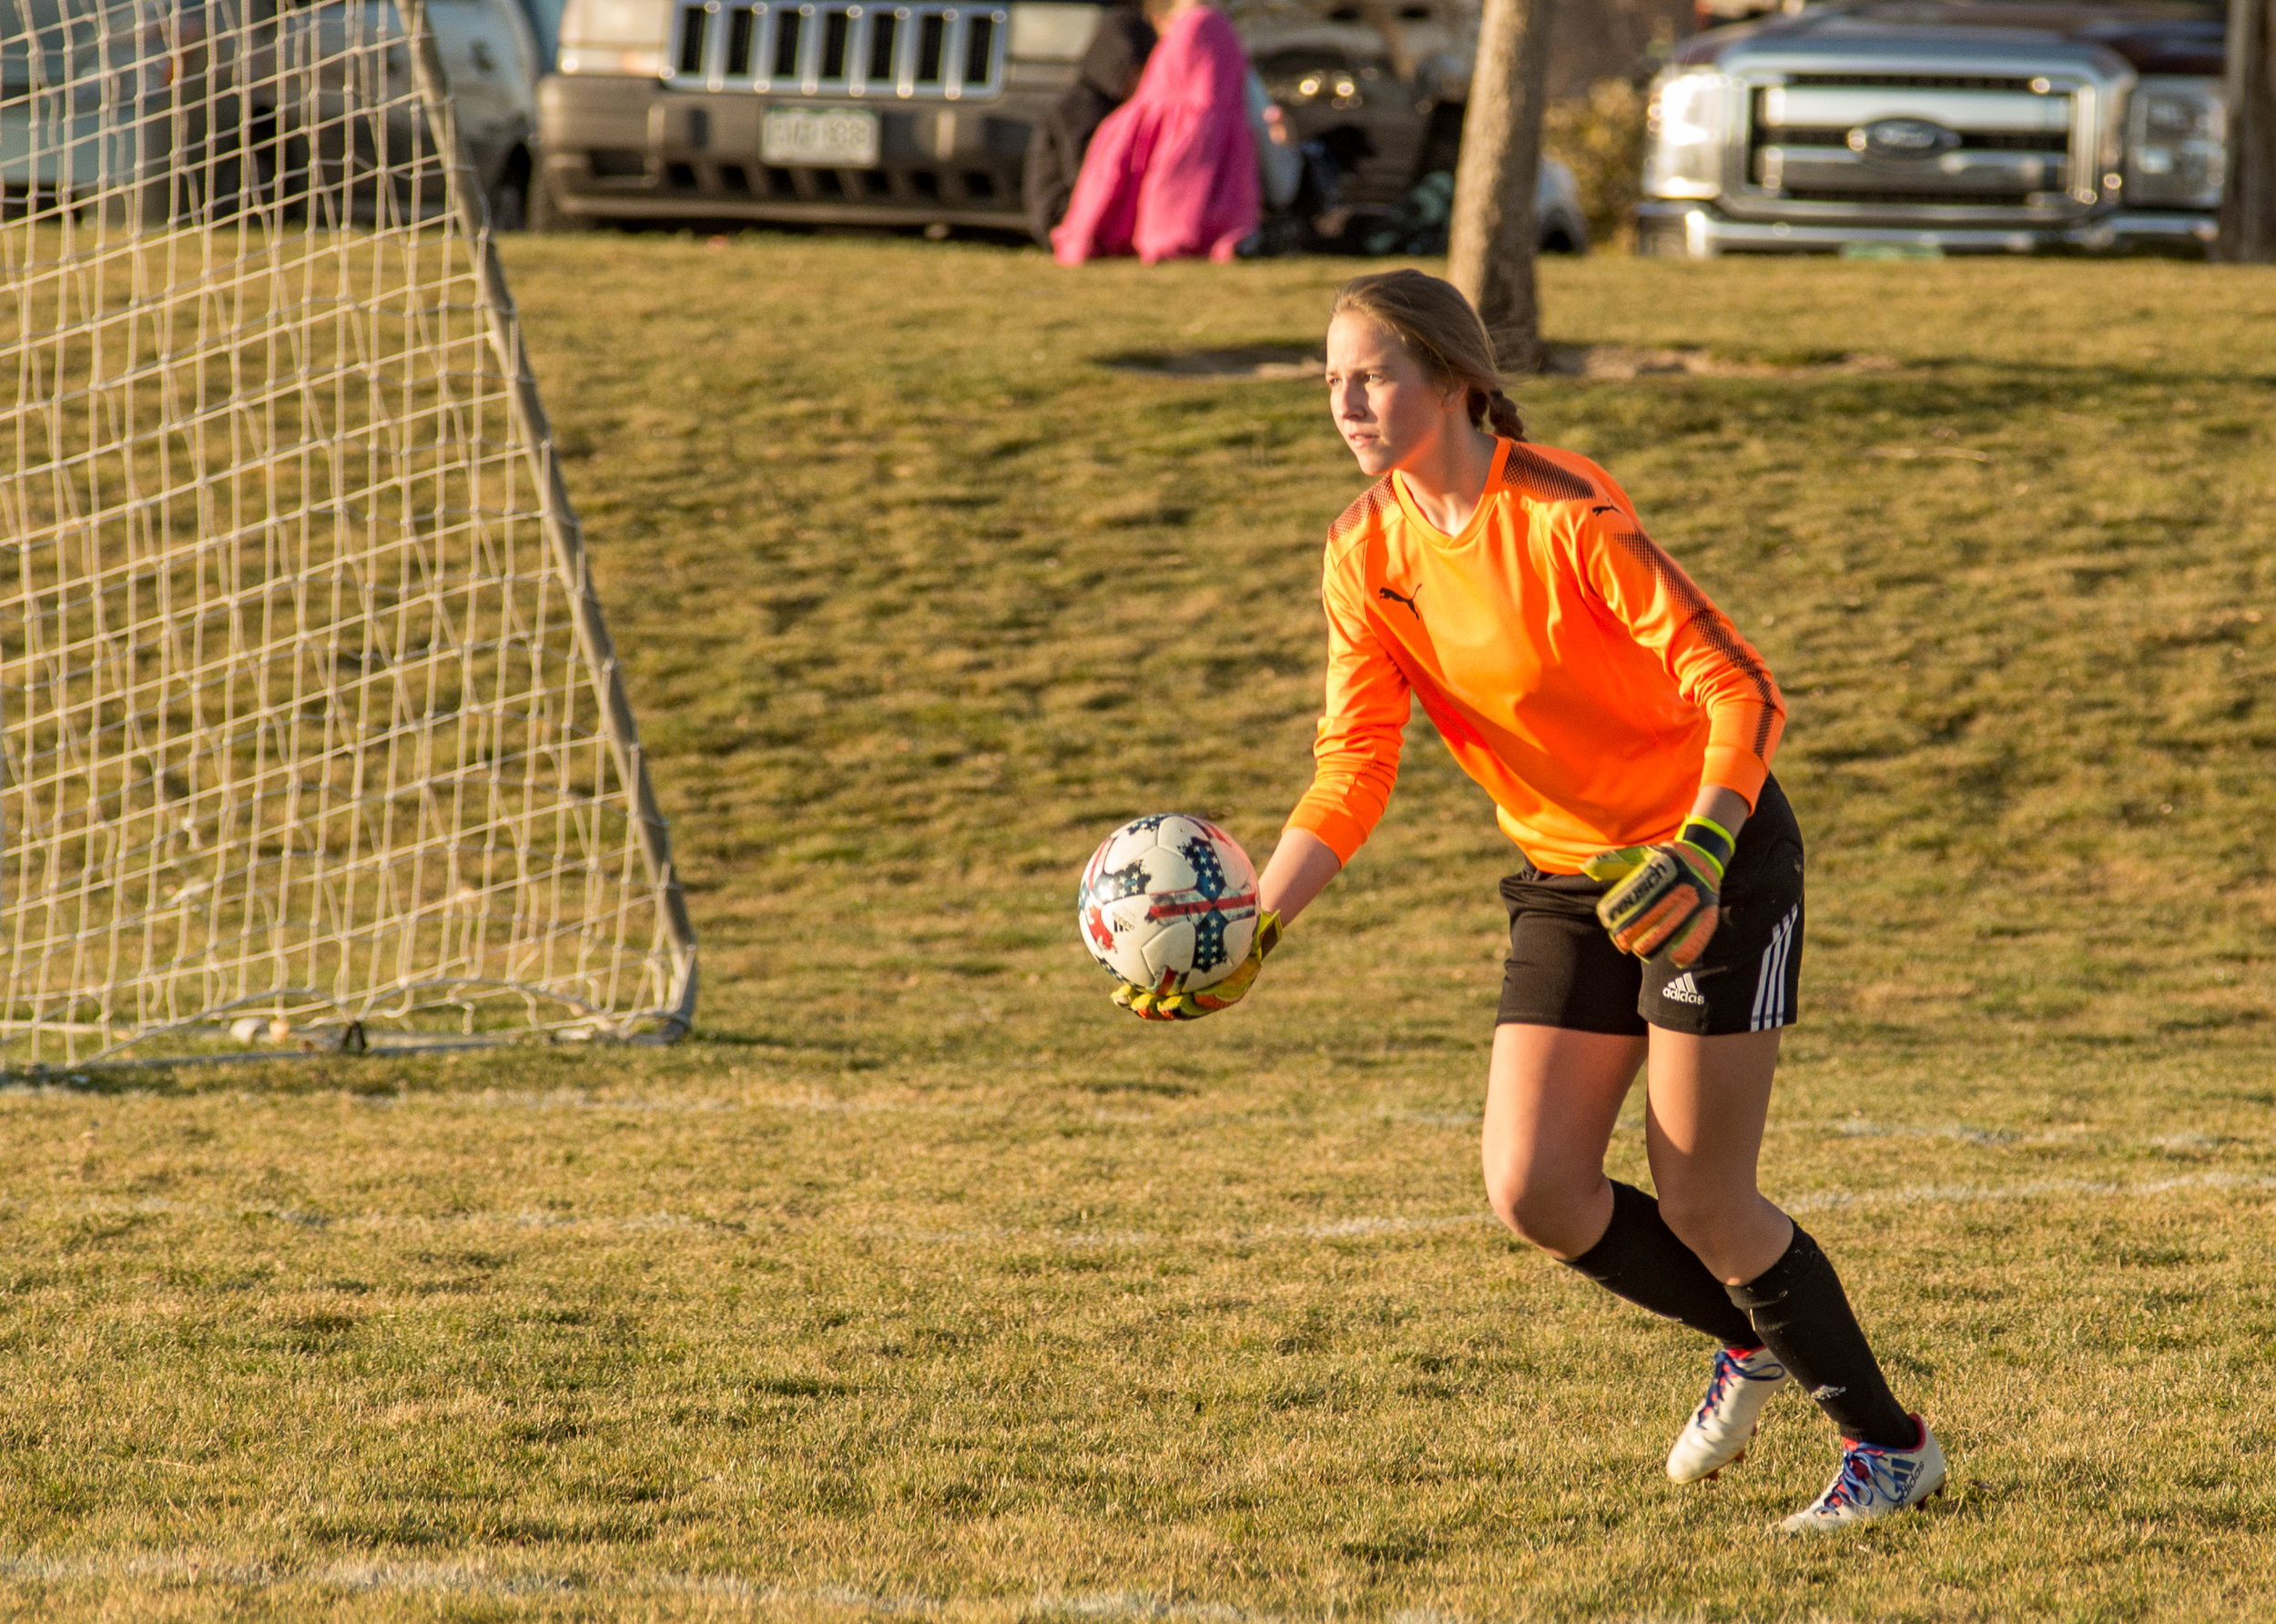 20171103-United SC vs Chaffee County-PMG_9315.jpg